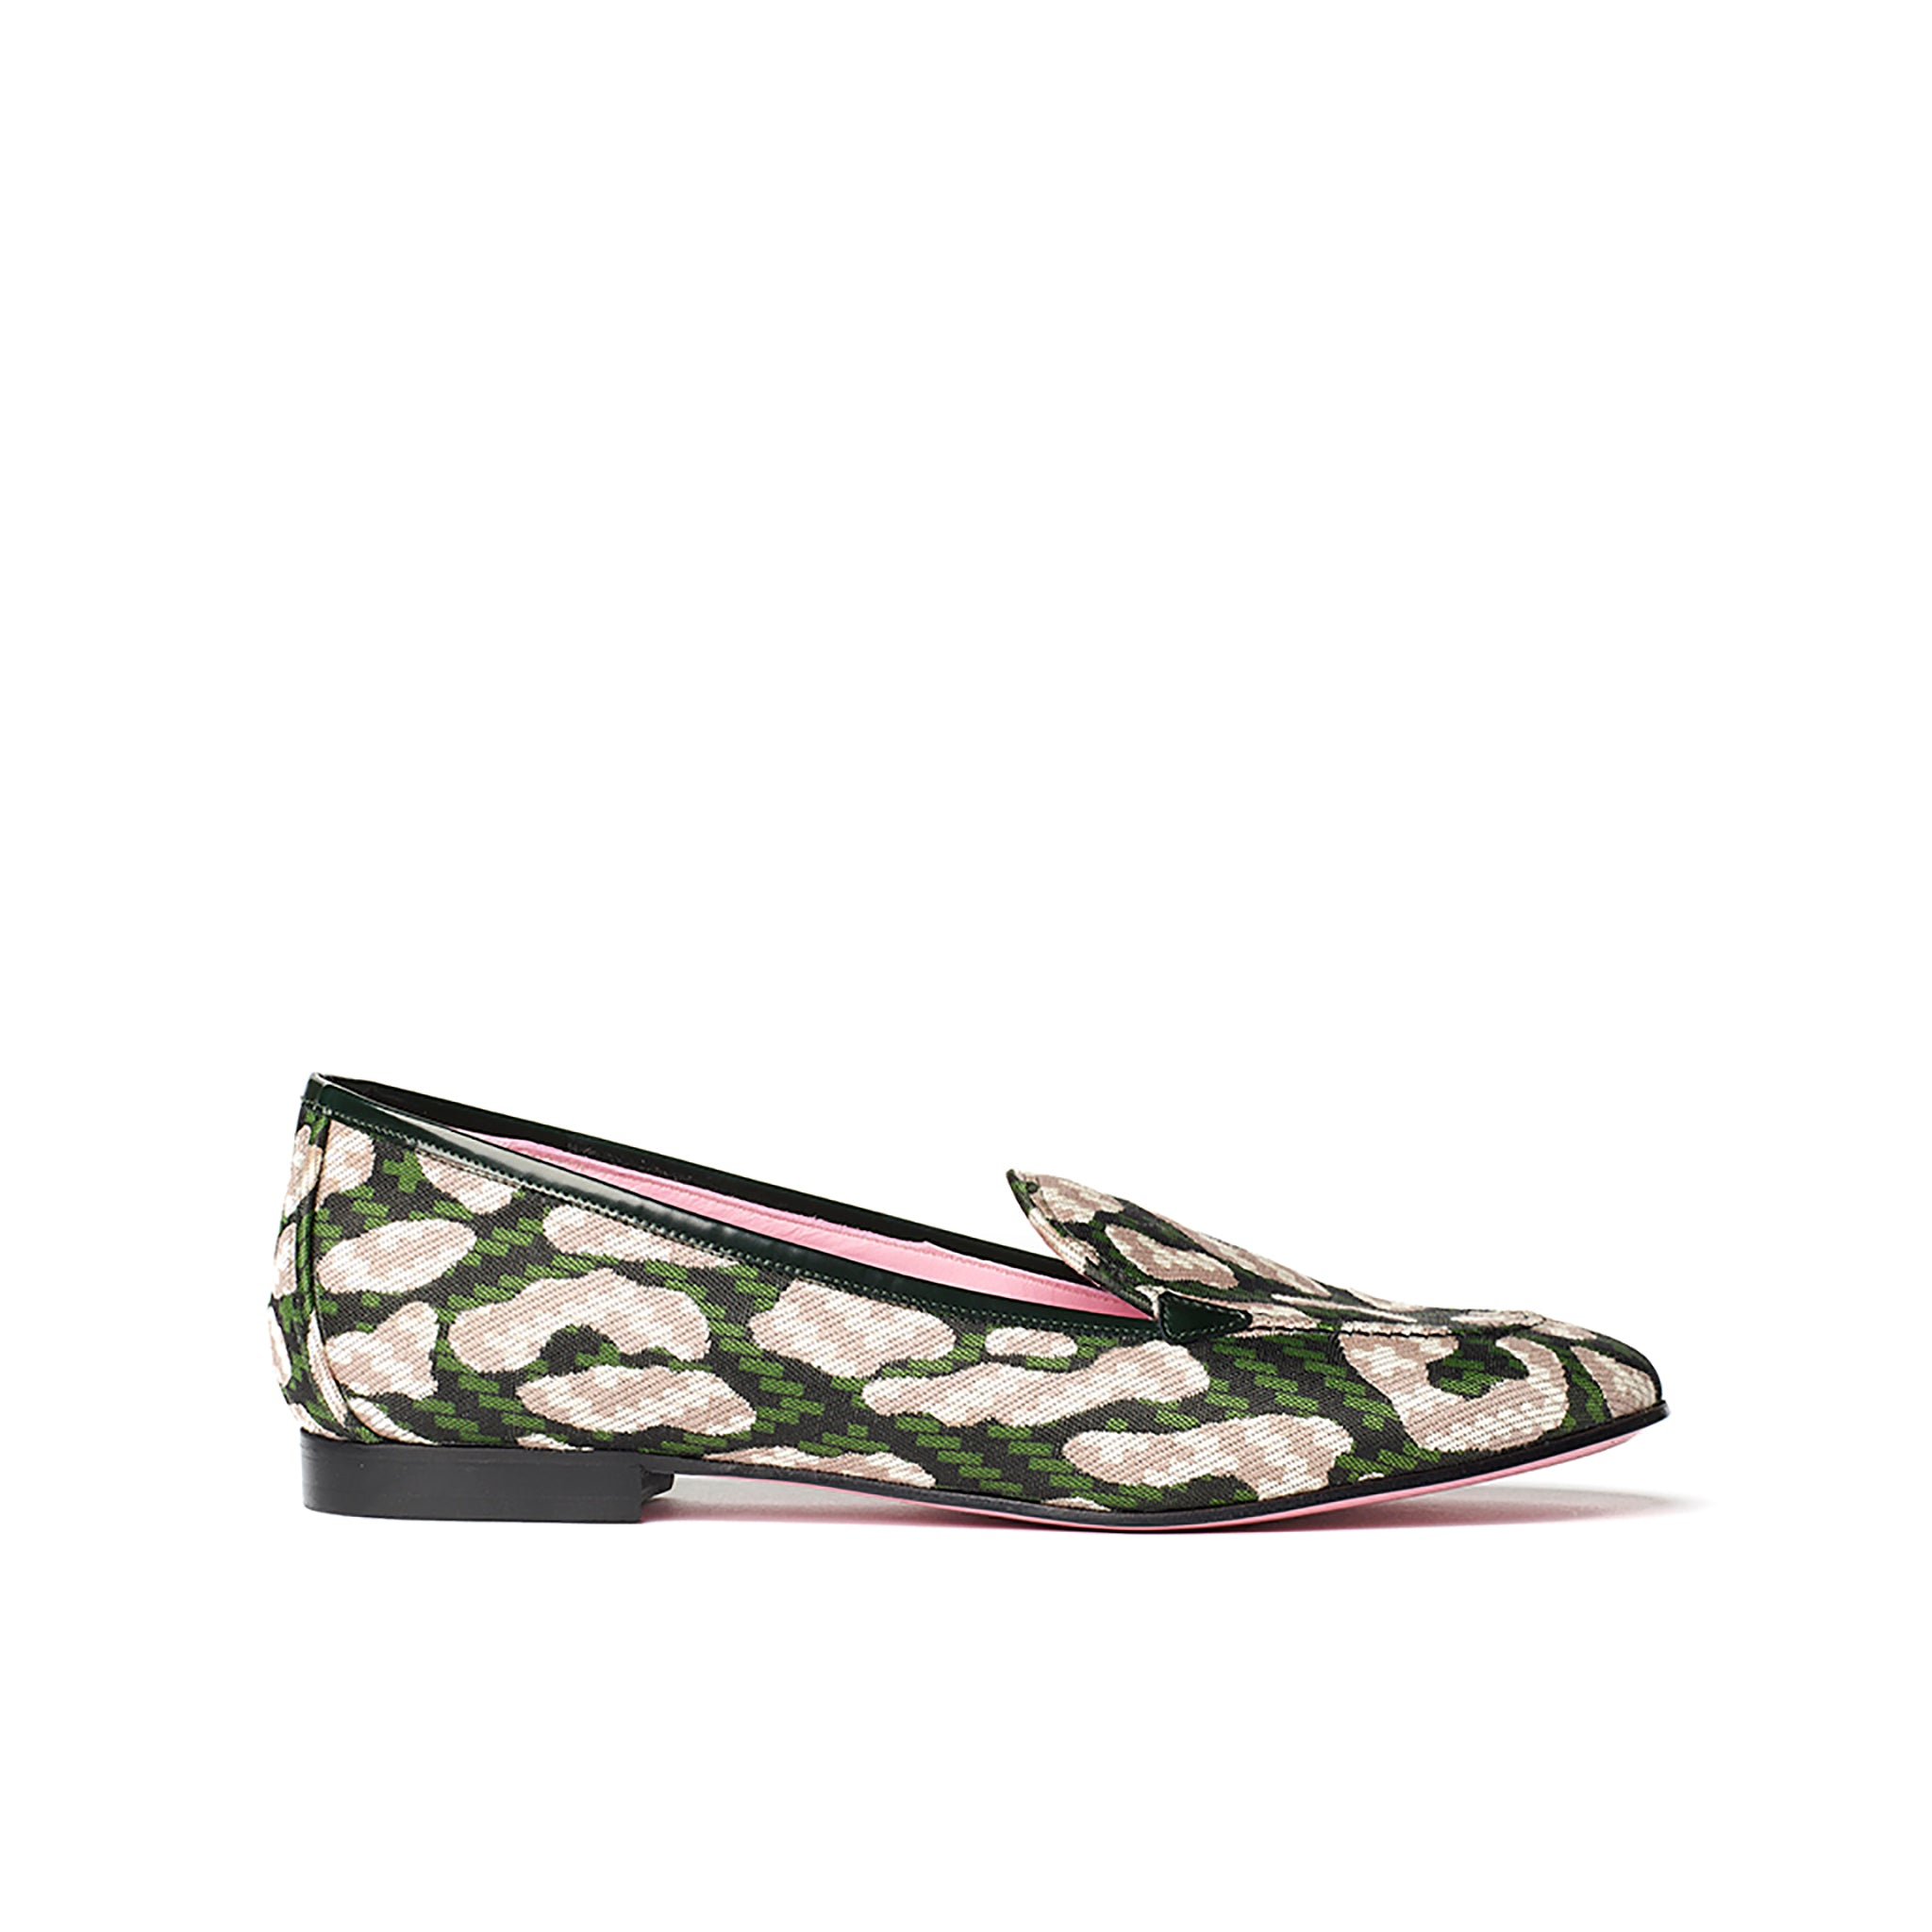 Phare classic loafer in dark green leopard jacquard